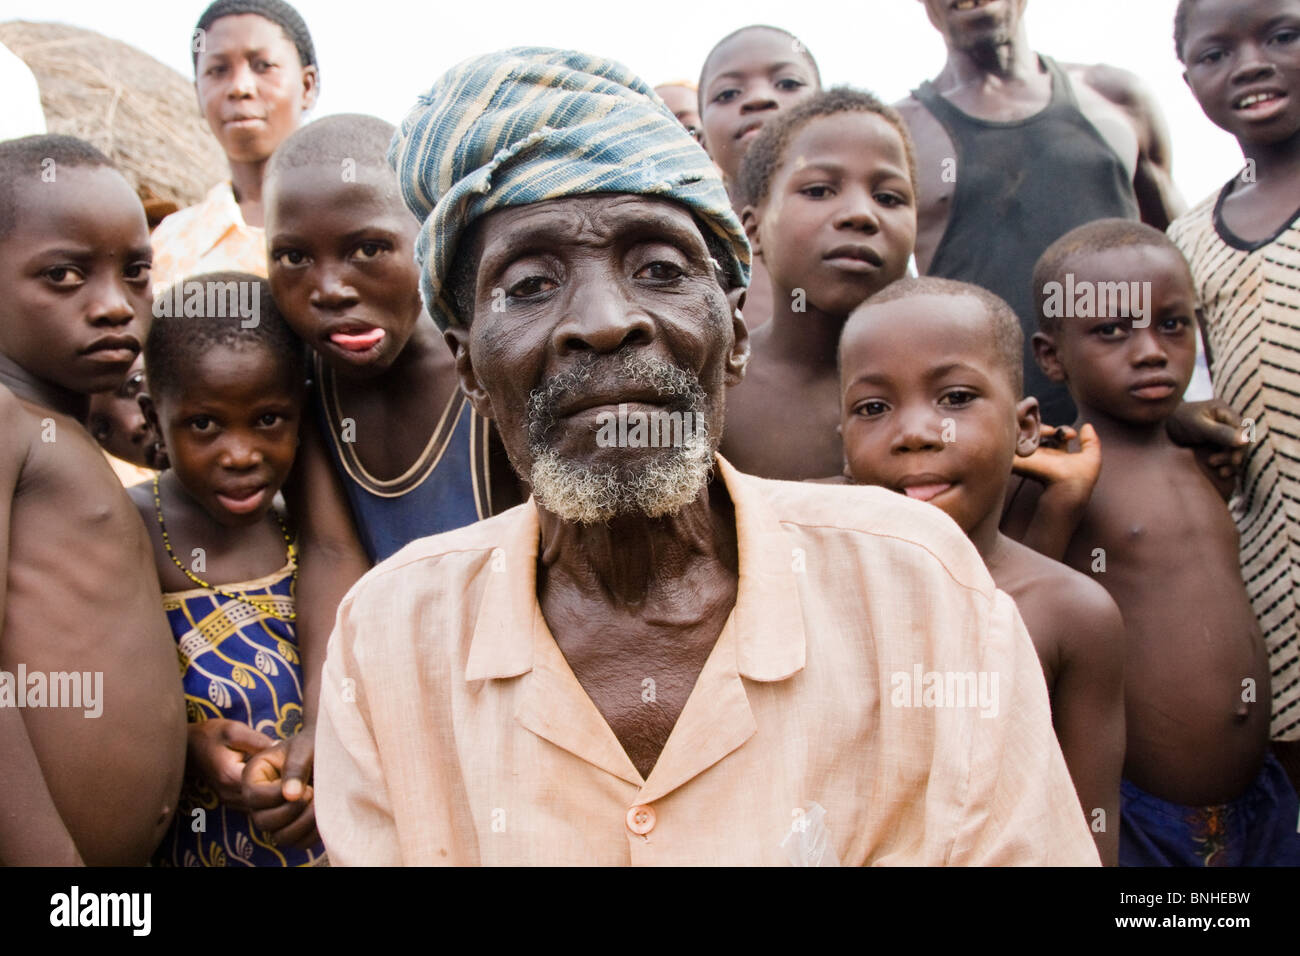 The chief of Bouchipe, a village in the Gonja Triangle, Damango district, with some of the children of the village. Stock Photo